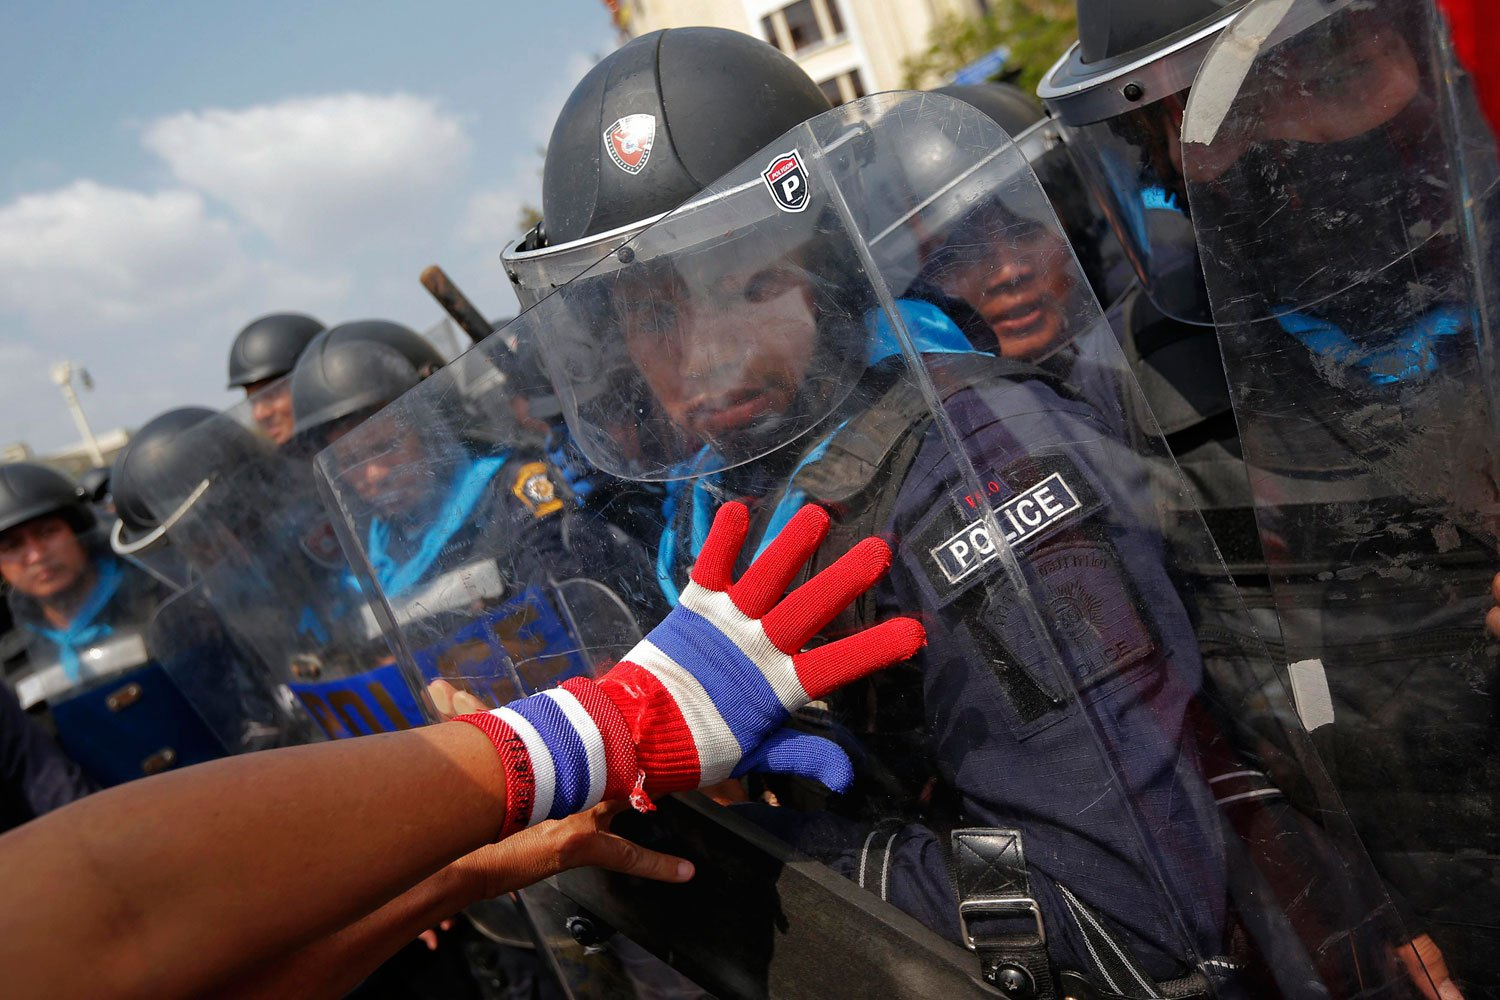 An anti-government protester pushes policemen during clashes near the Government House in Bangkok, on Feb. 18, 2014.